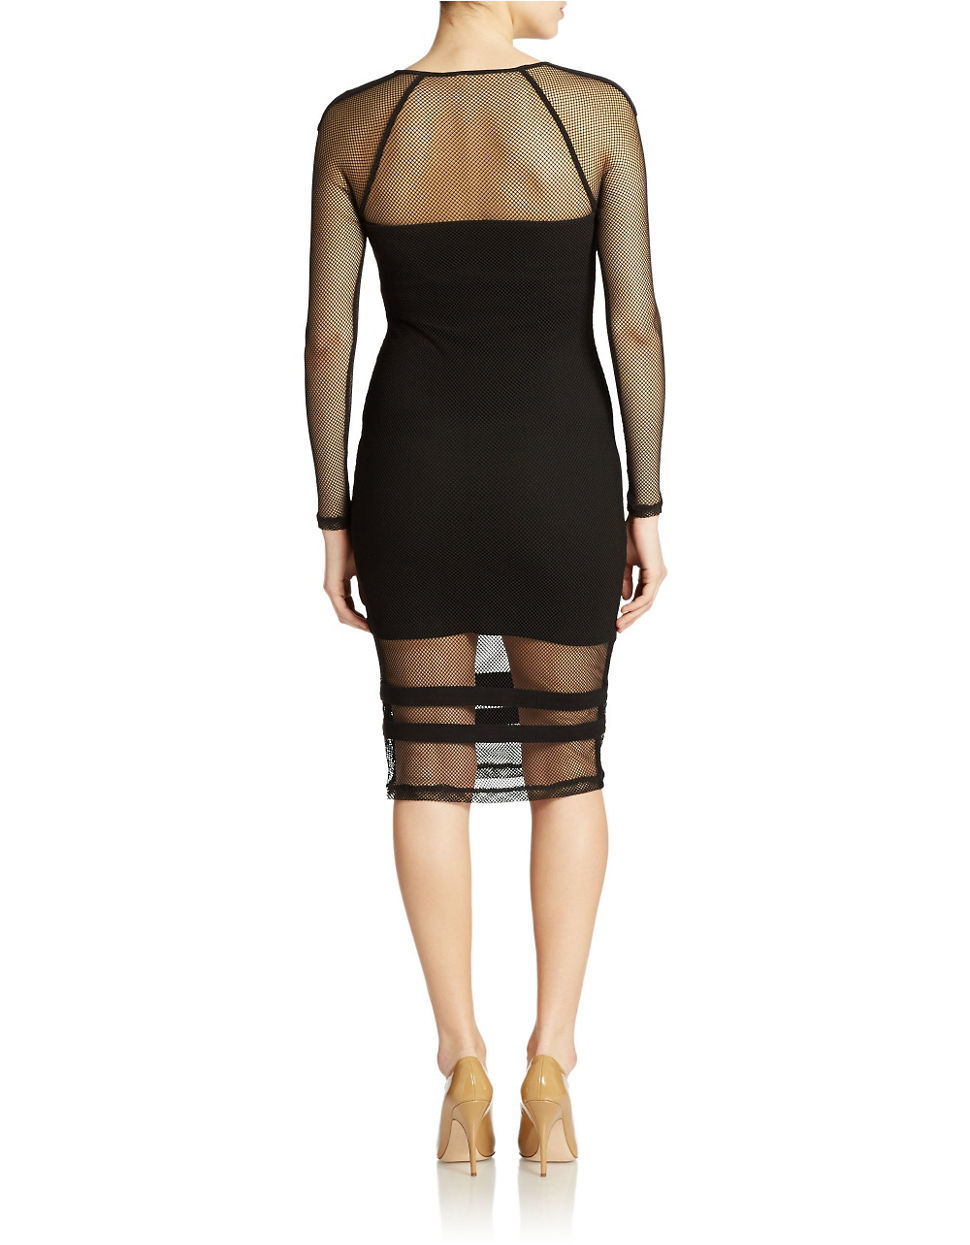 Guess fishnet contrast dress lyst for Fish net dress